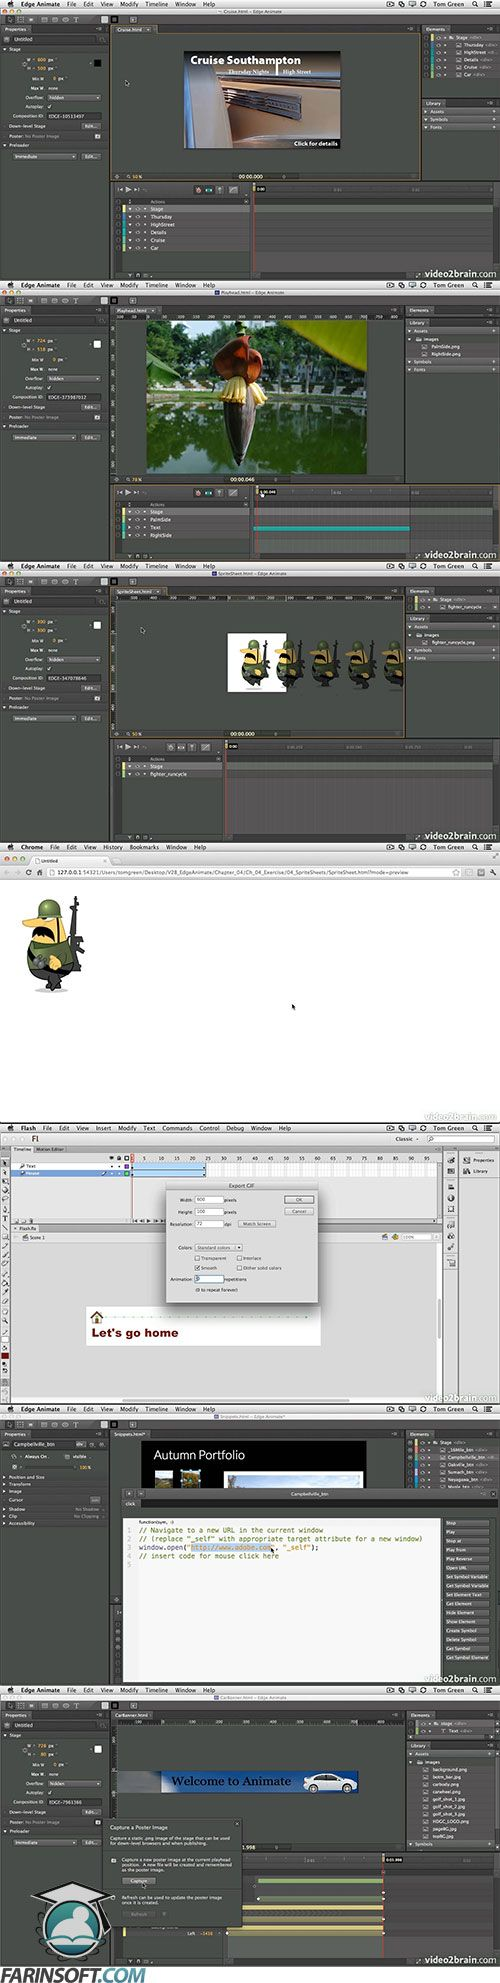 Getting-Started-with-Adobe-Edge-Animate